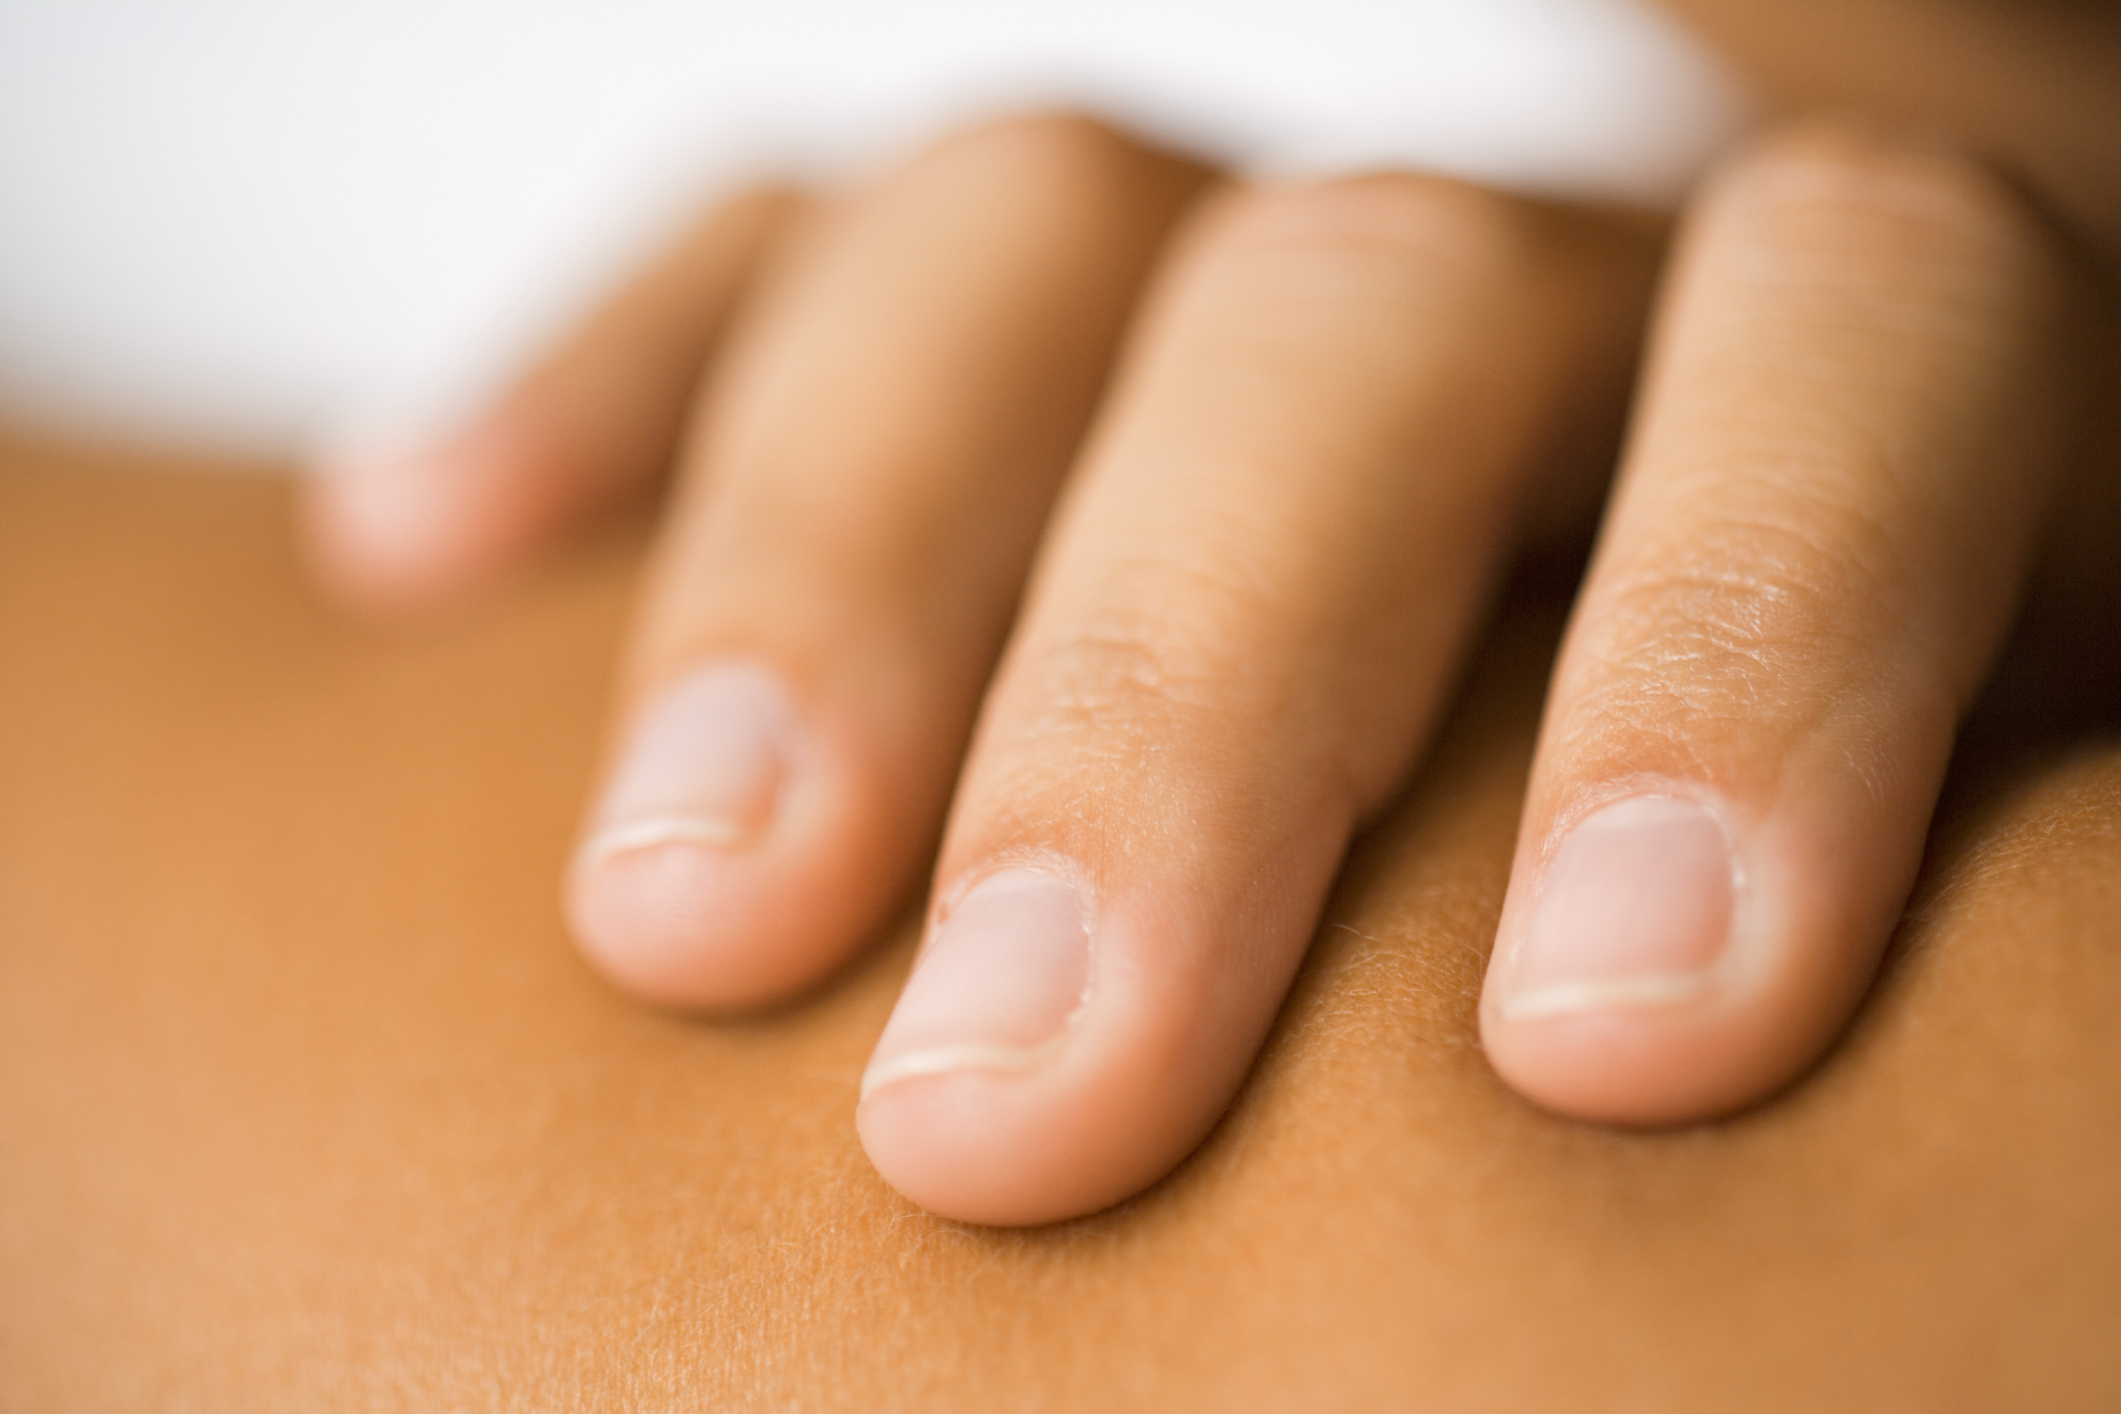 What Causes Itchy Pins & Needles Feelings On Skin? | Healthfully